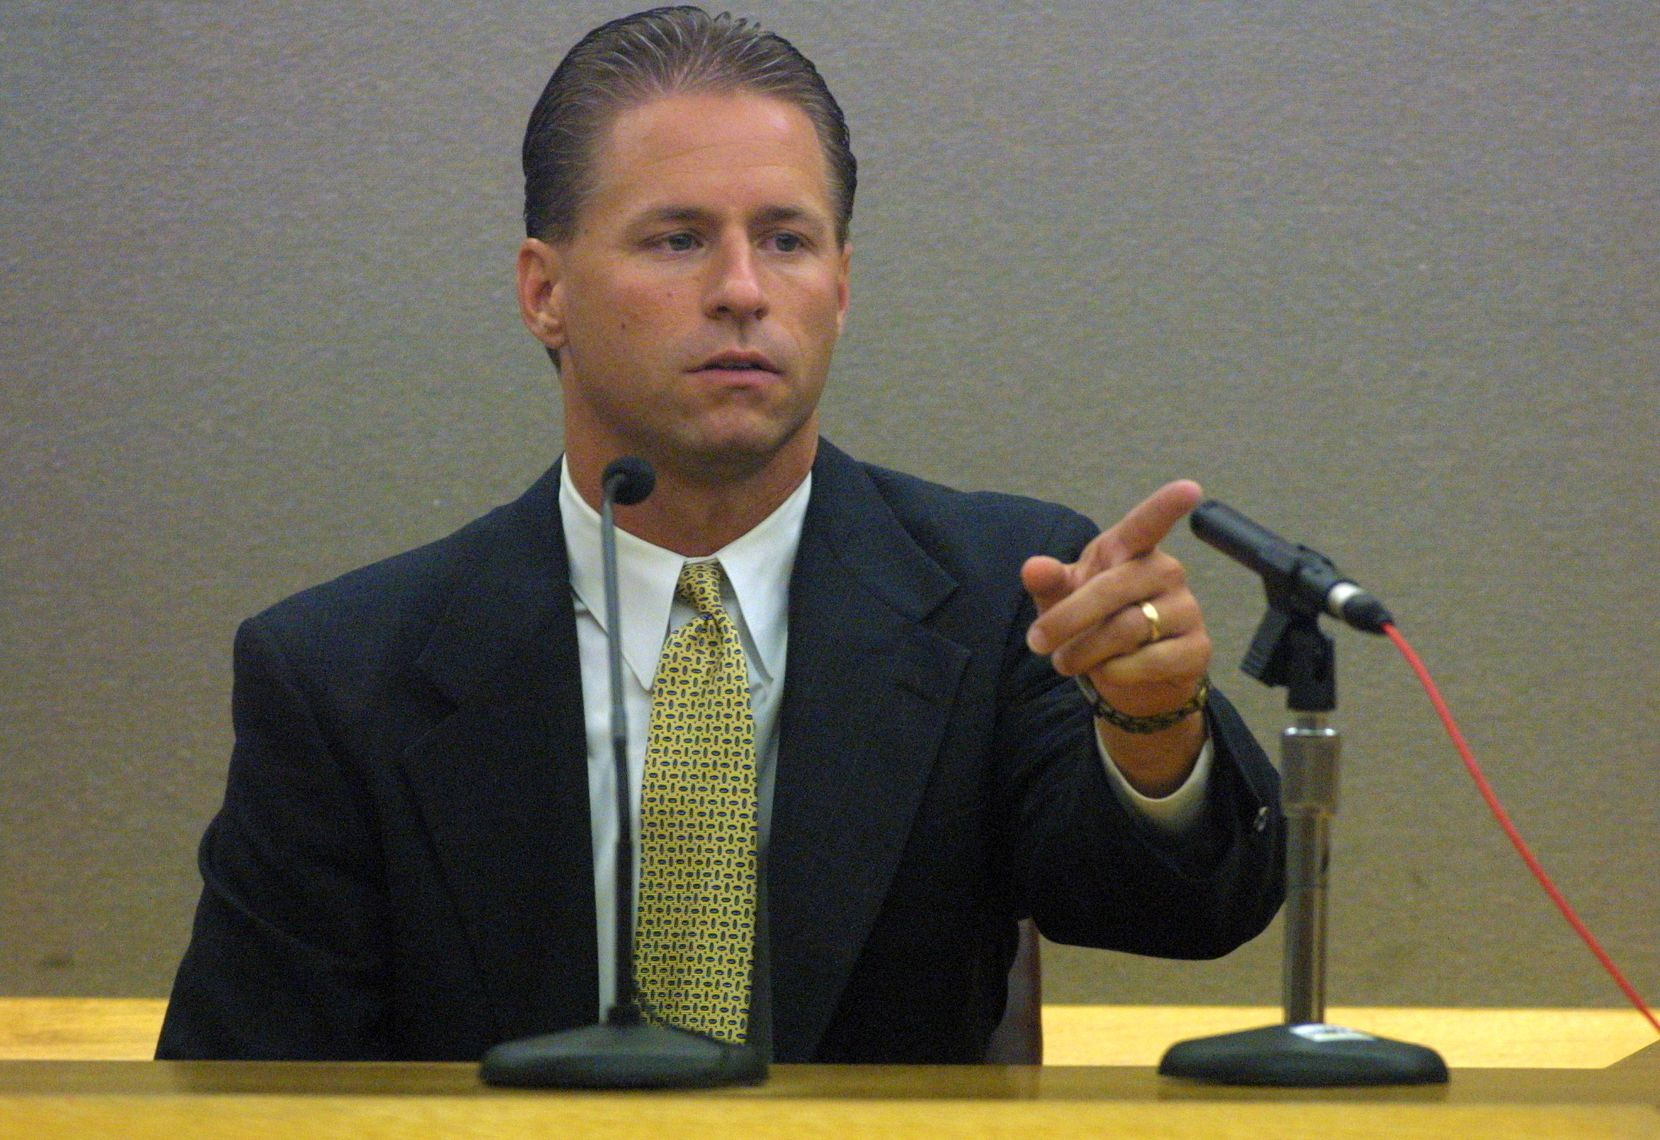 Sgt. Jeff Spivey, who is now chief of the Irving Police Department, pointed to Texas Seven suspect George Rivas during a pretrial hearing in 2011.